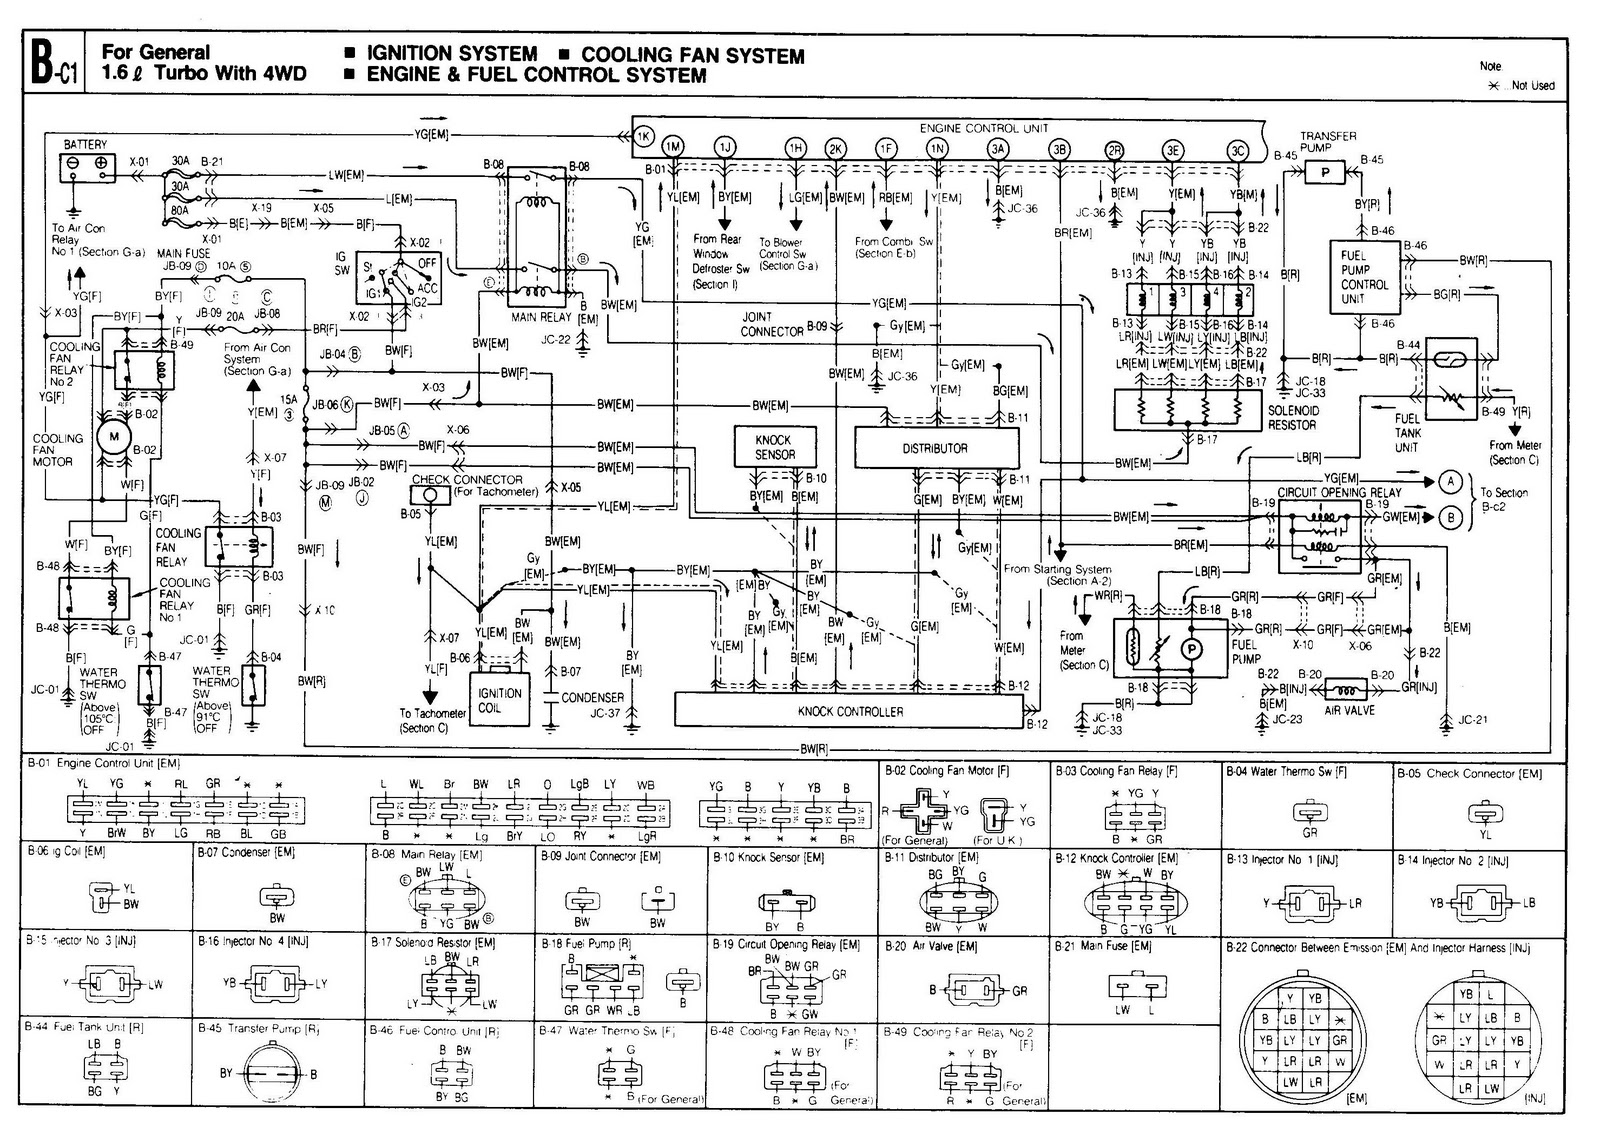 Dm 4274 Tach Wire Diagram Output Together With Microtech Rx7